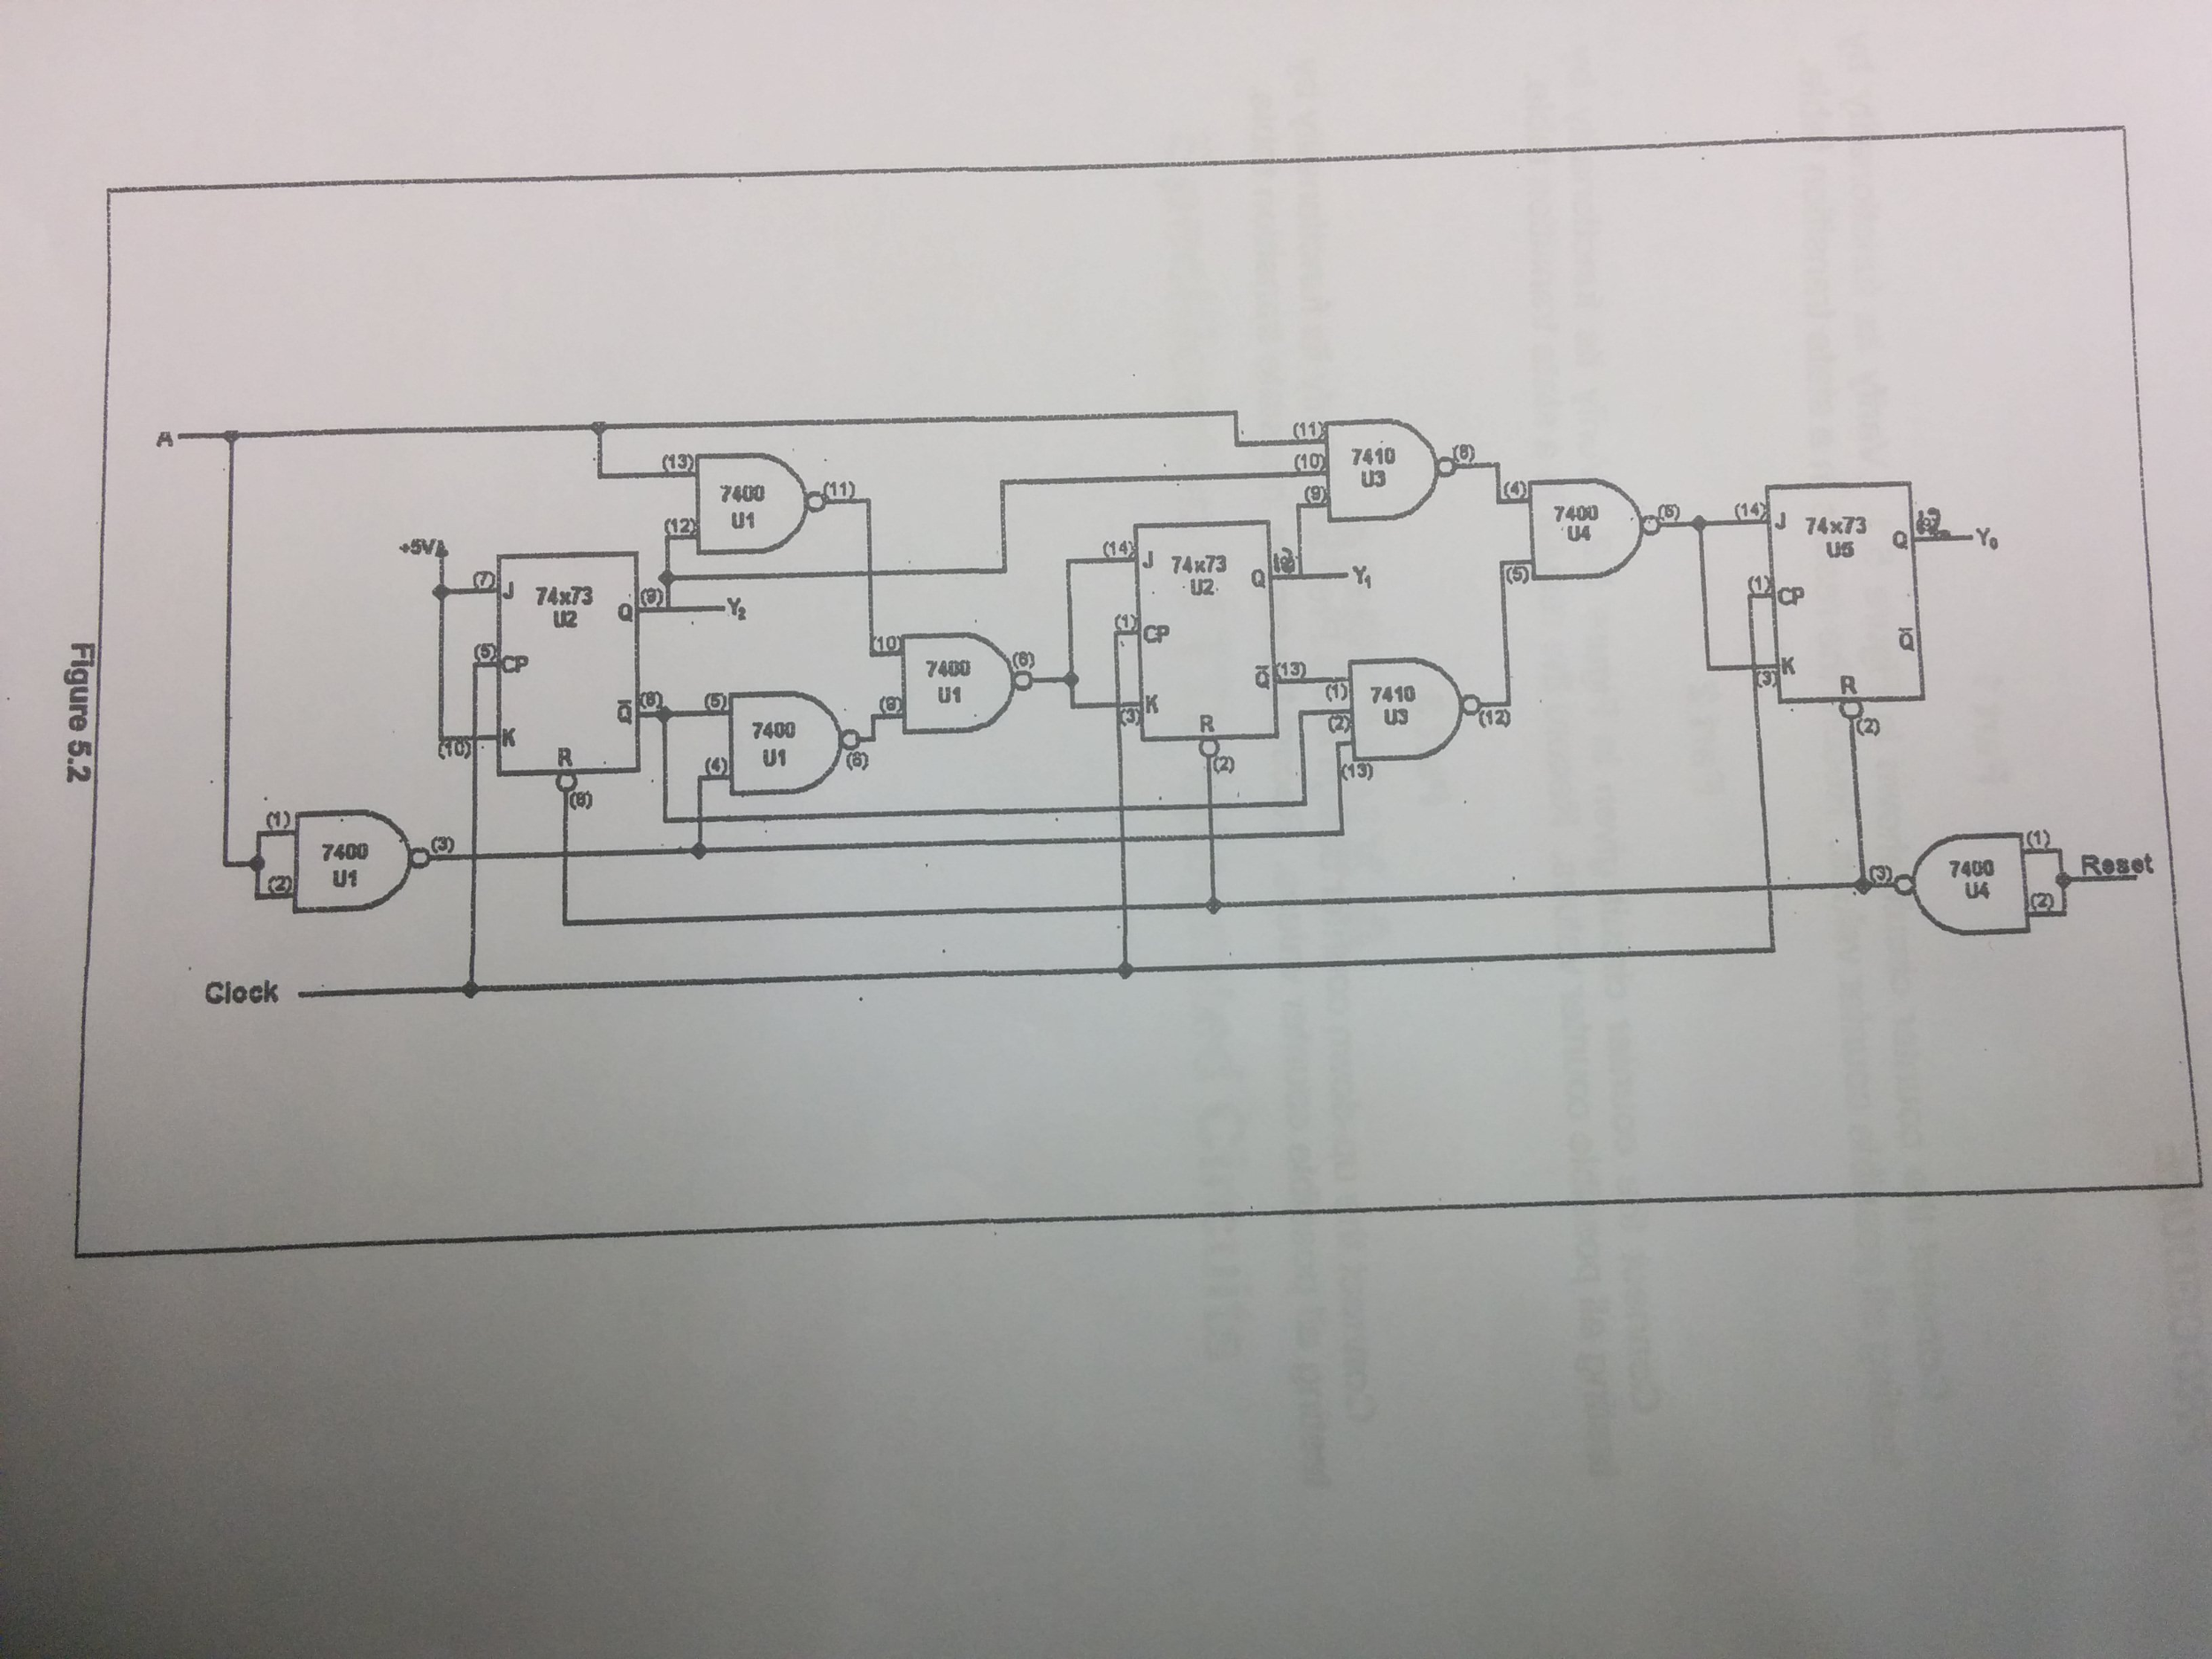 a) Analyze the sequential counter circuit in figure 5.1. Derive the state  transition table and diagram.